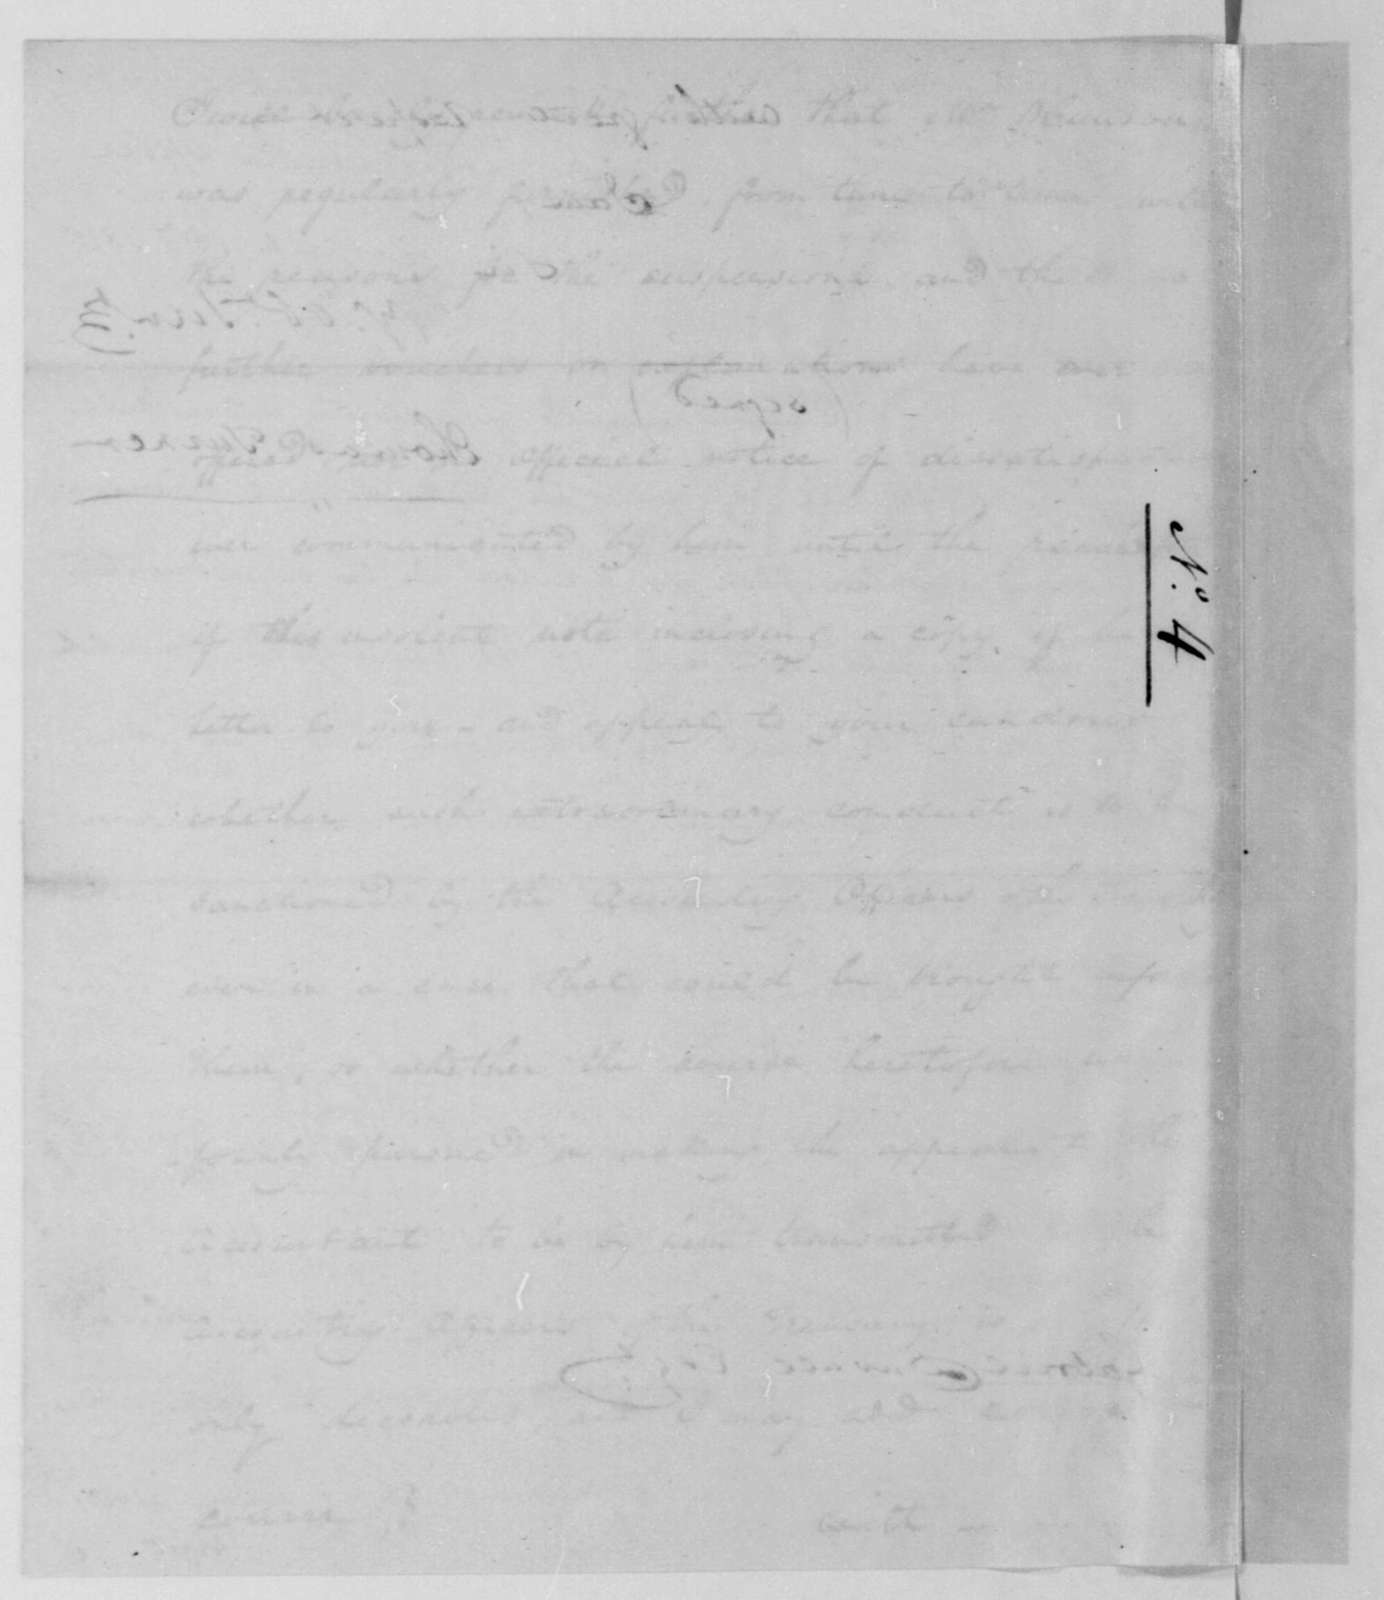 Thomas Turner to Gabriel Duvall, April 15, 1811.